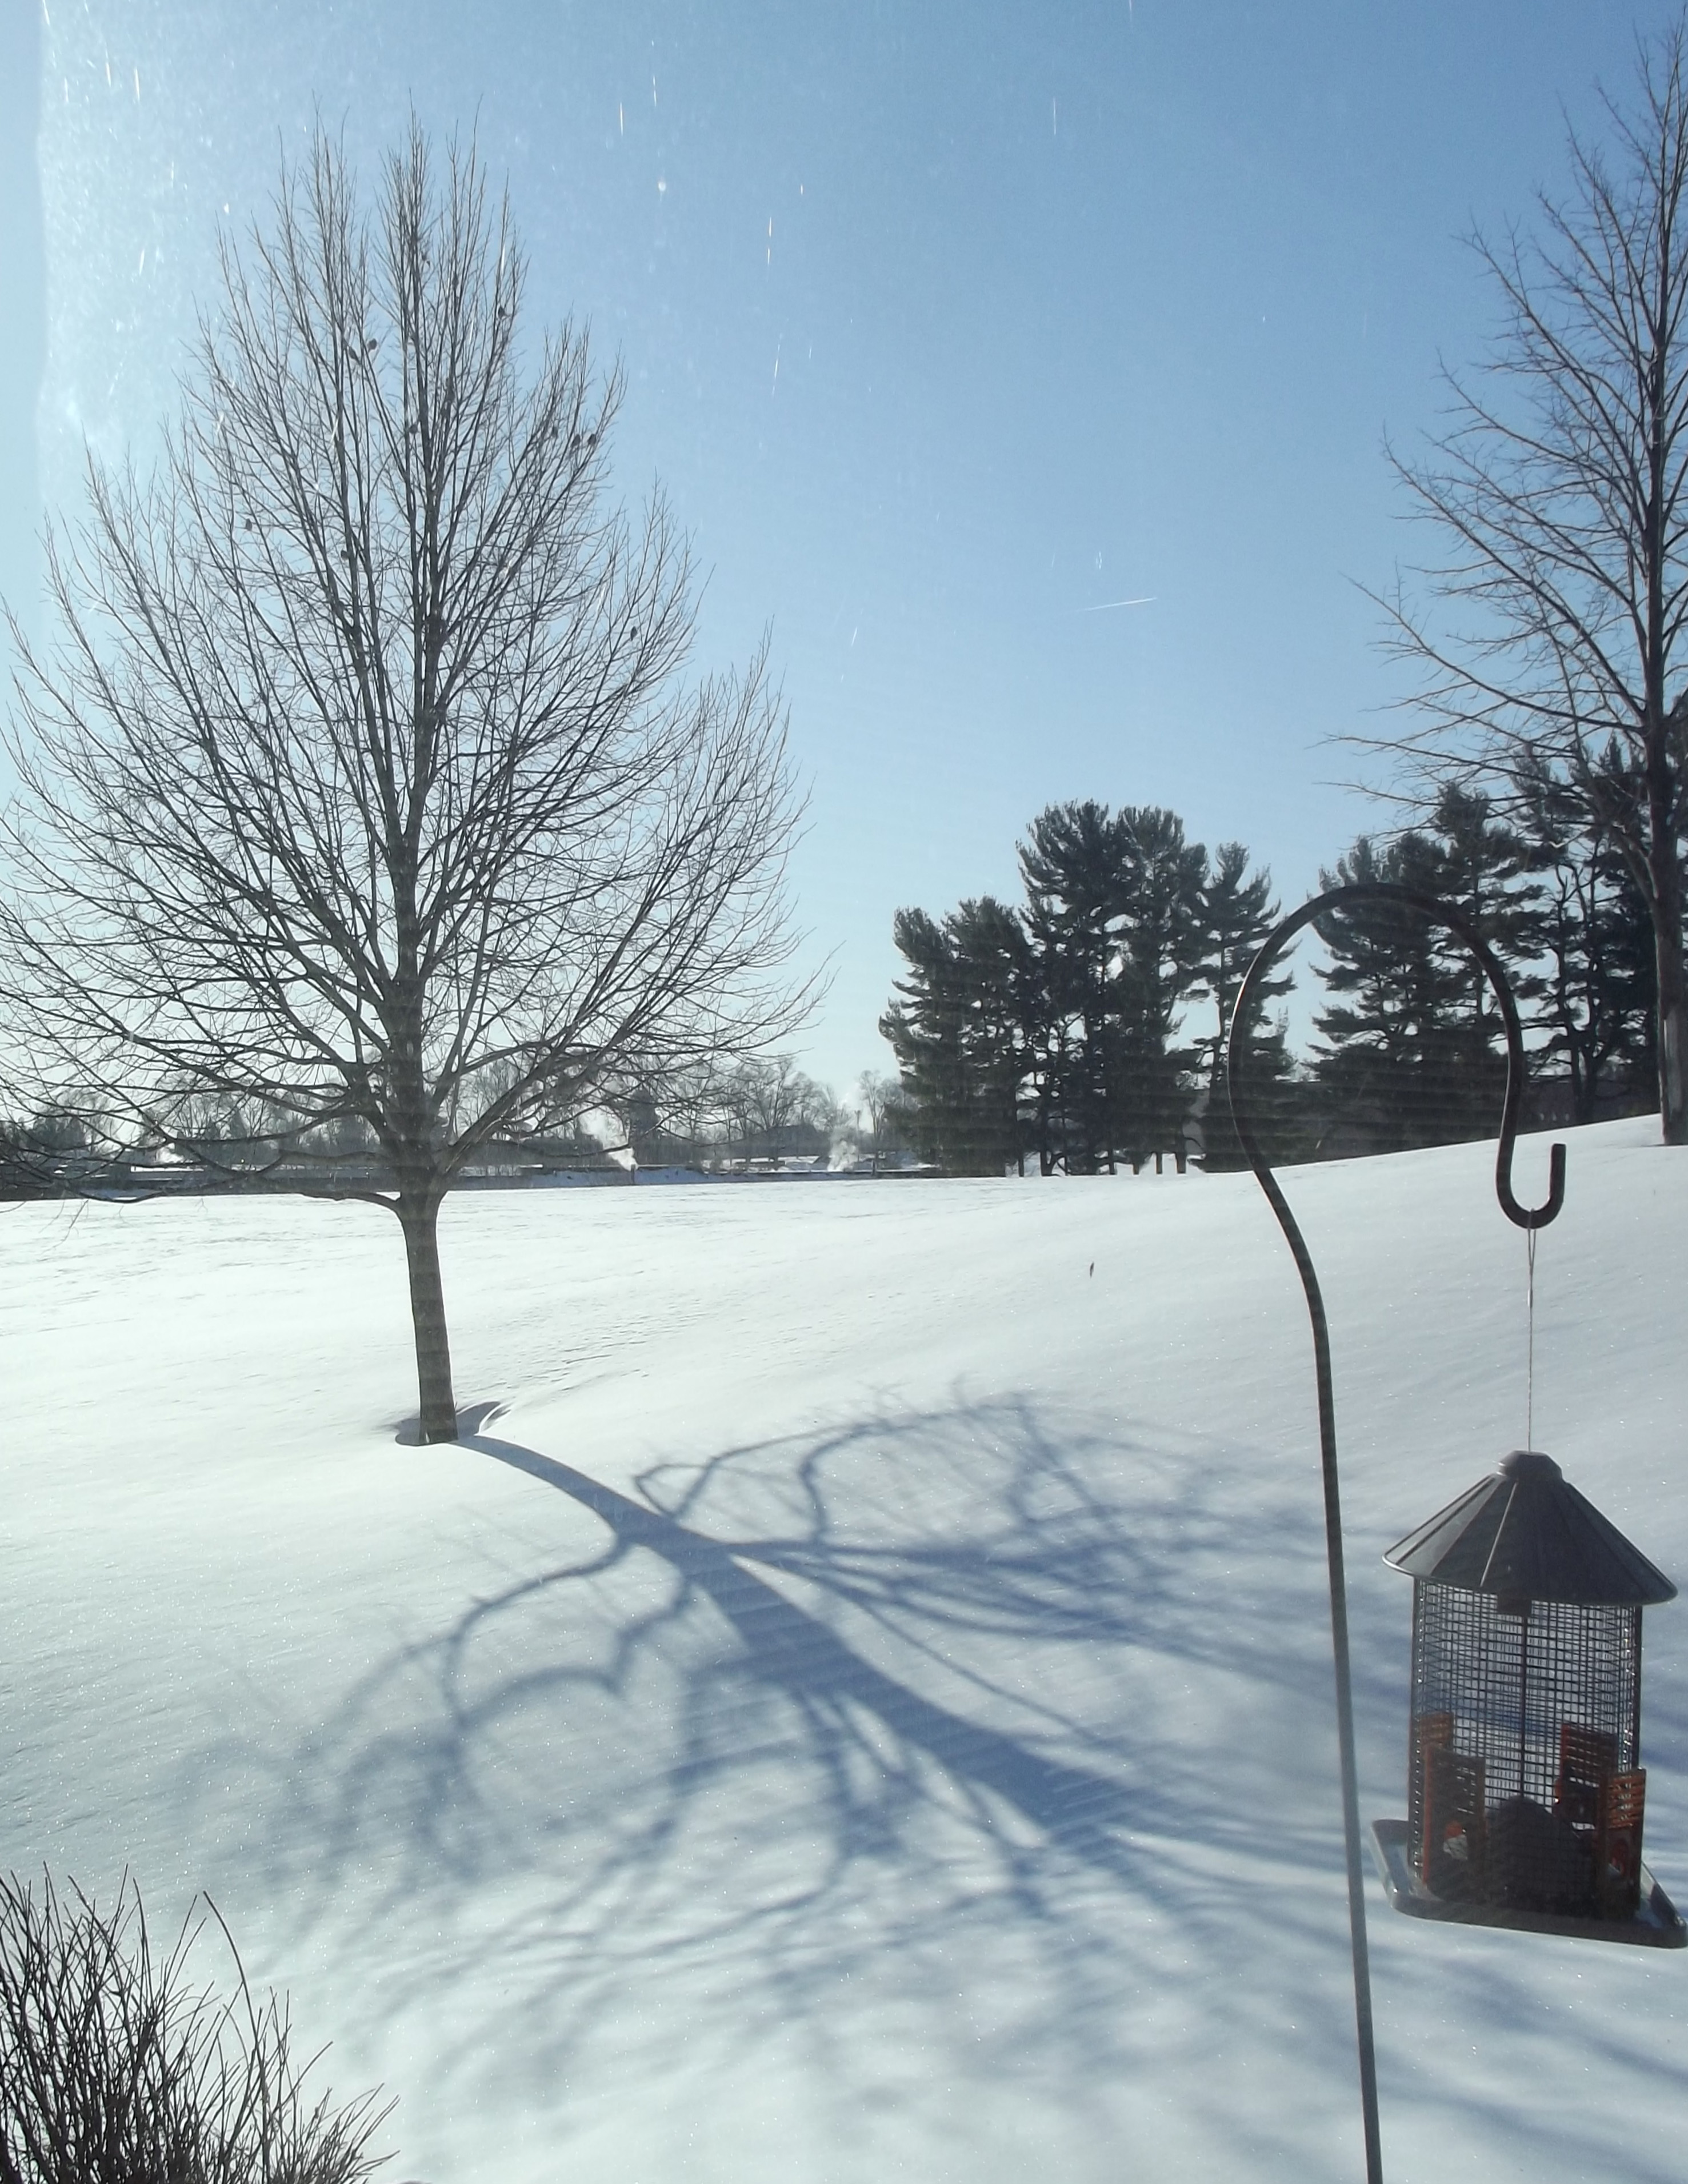 winter shadow. Taken 3/3/2014 my backyard by me.